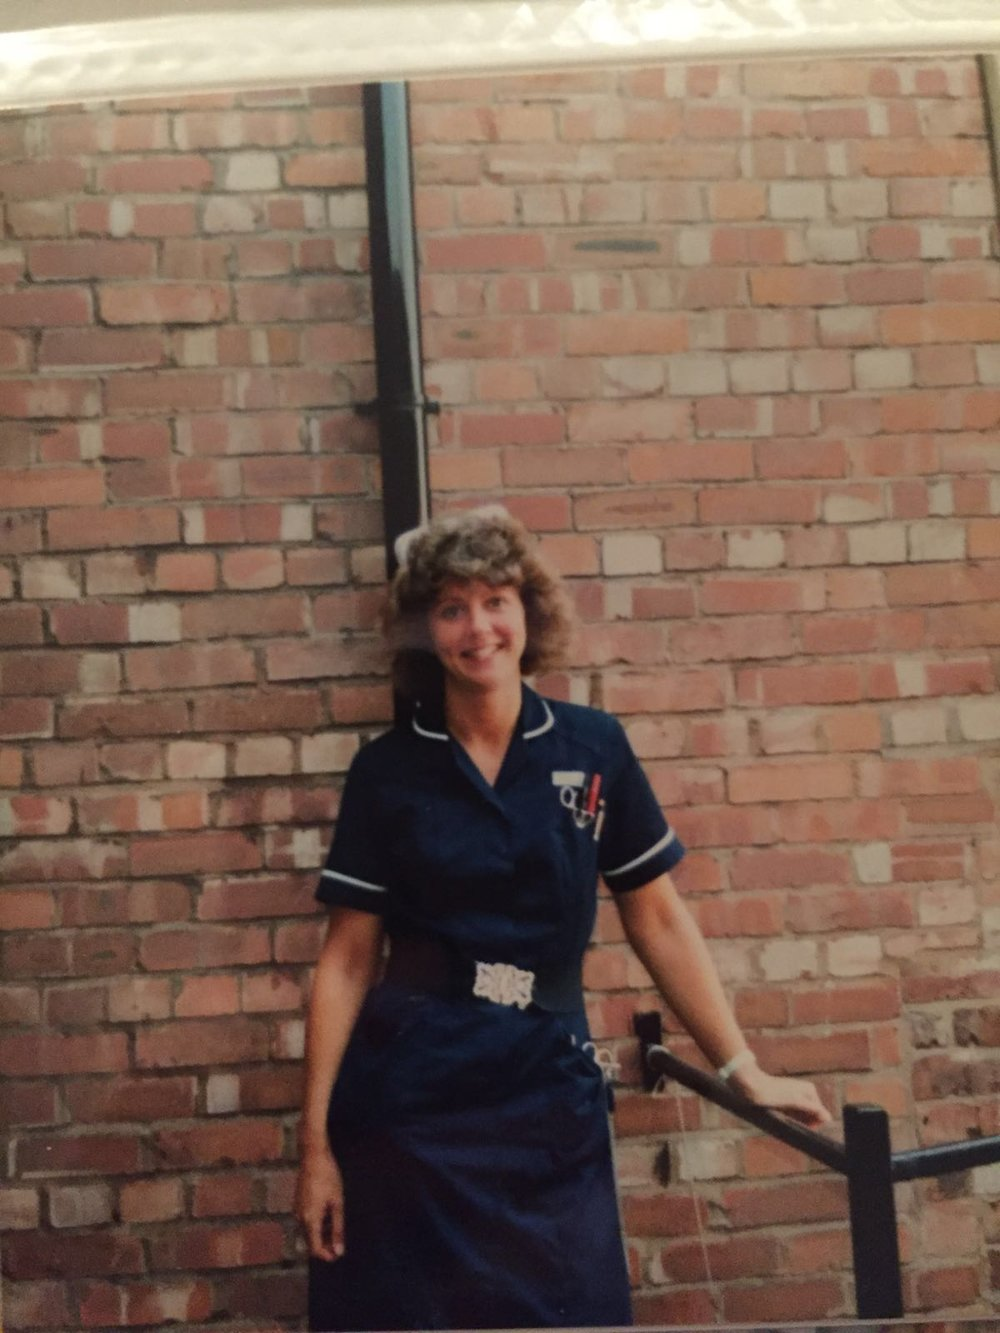 Nat's mum as a young nurse